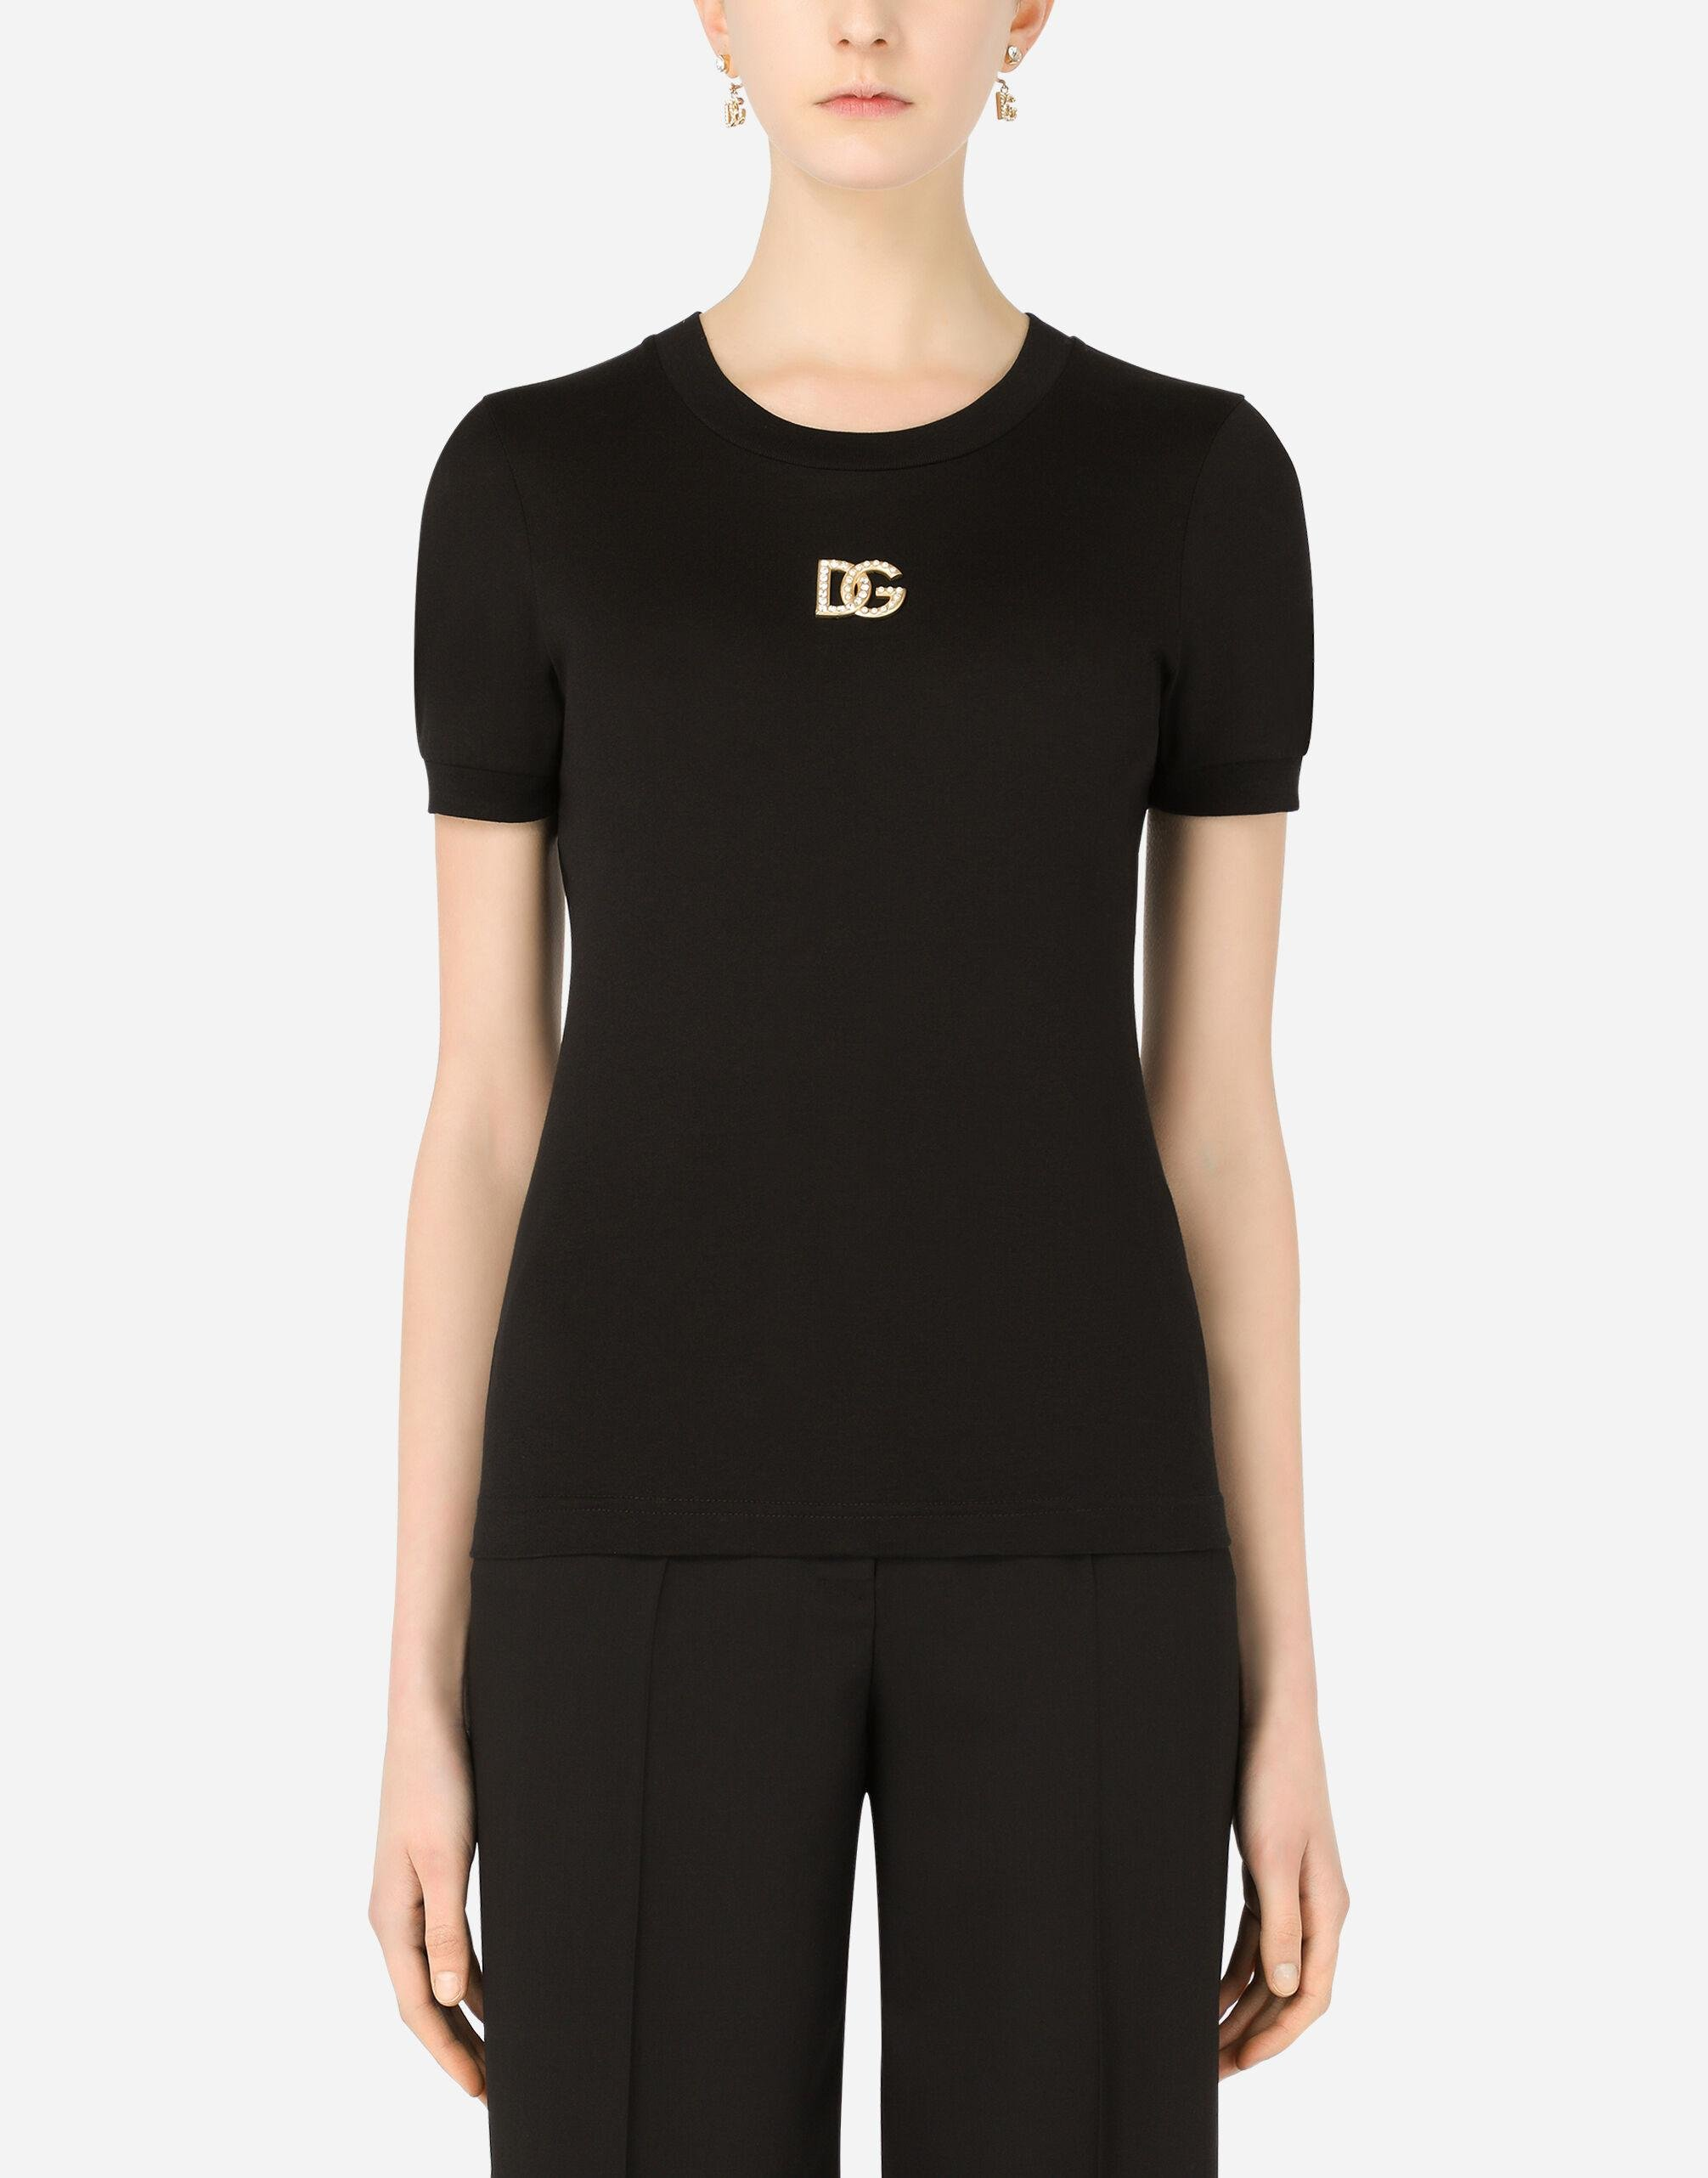 Jersey T-shirt with DG embellishment